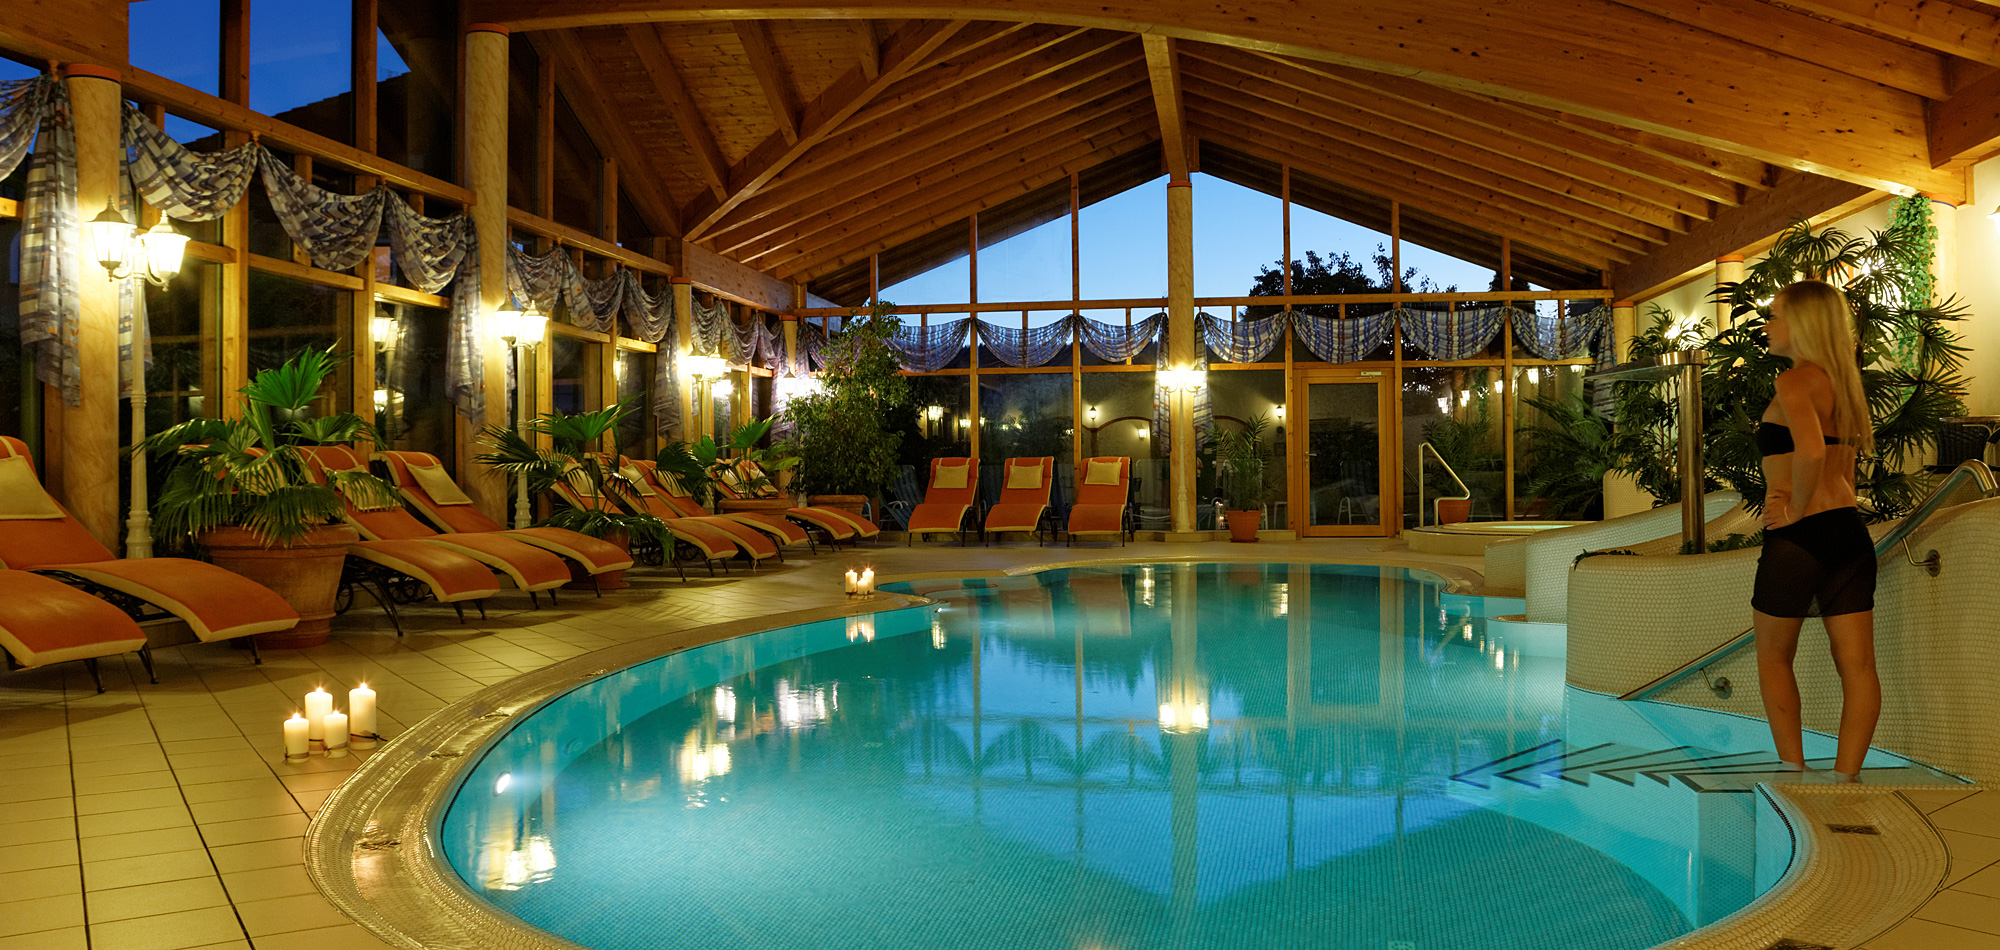 Spa wellness hotel  Urlaubshotel in Bayern 3-Sterne Superior Wellnesshotel Weber in ...